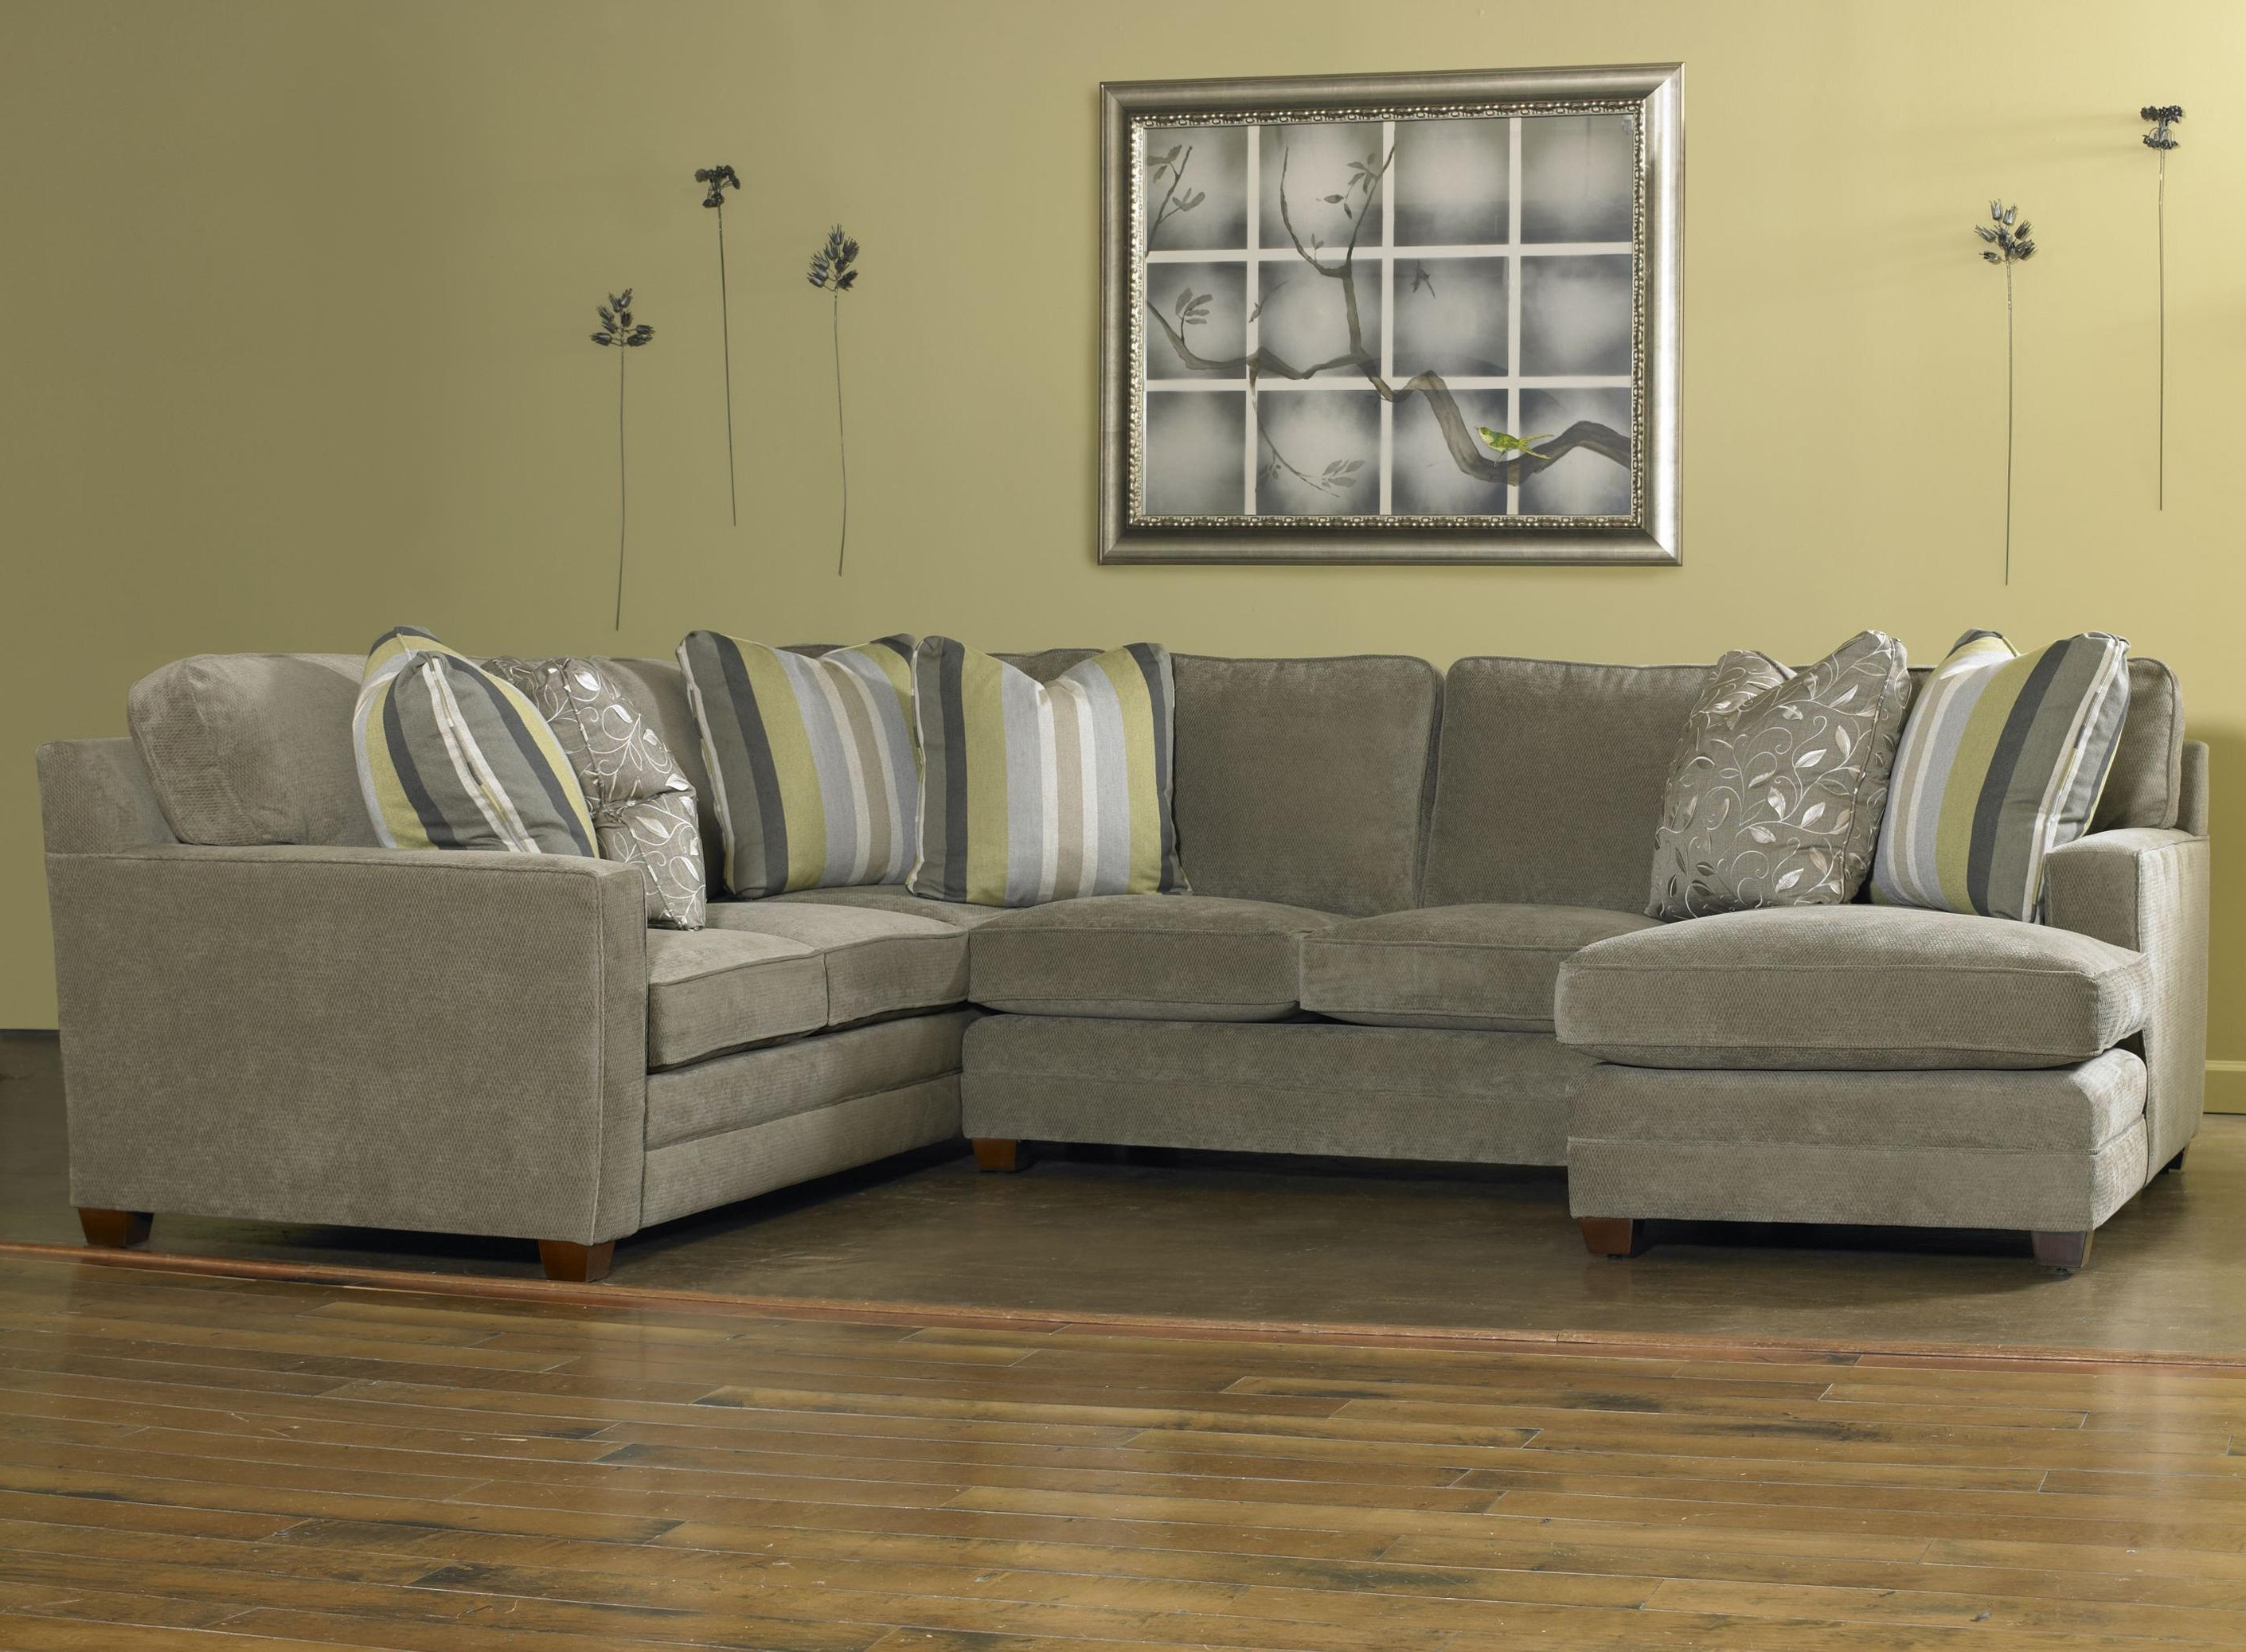 Most Recent Visalia Ca Sectional Sofas Throughout Sam Moore Ricky Contemporary Three Piece Sectional Sofa W/ Laf (View 11 of 15)